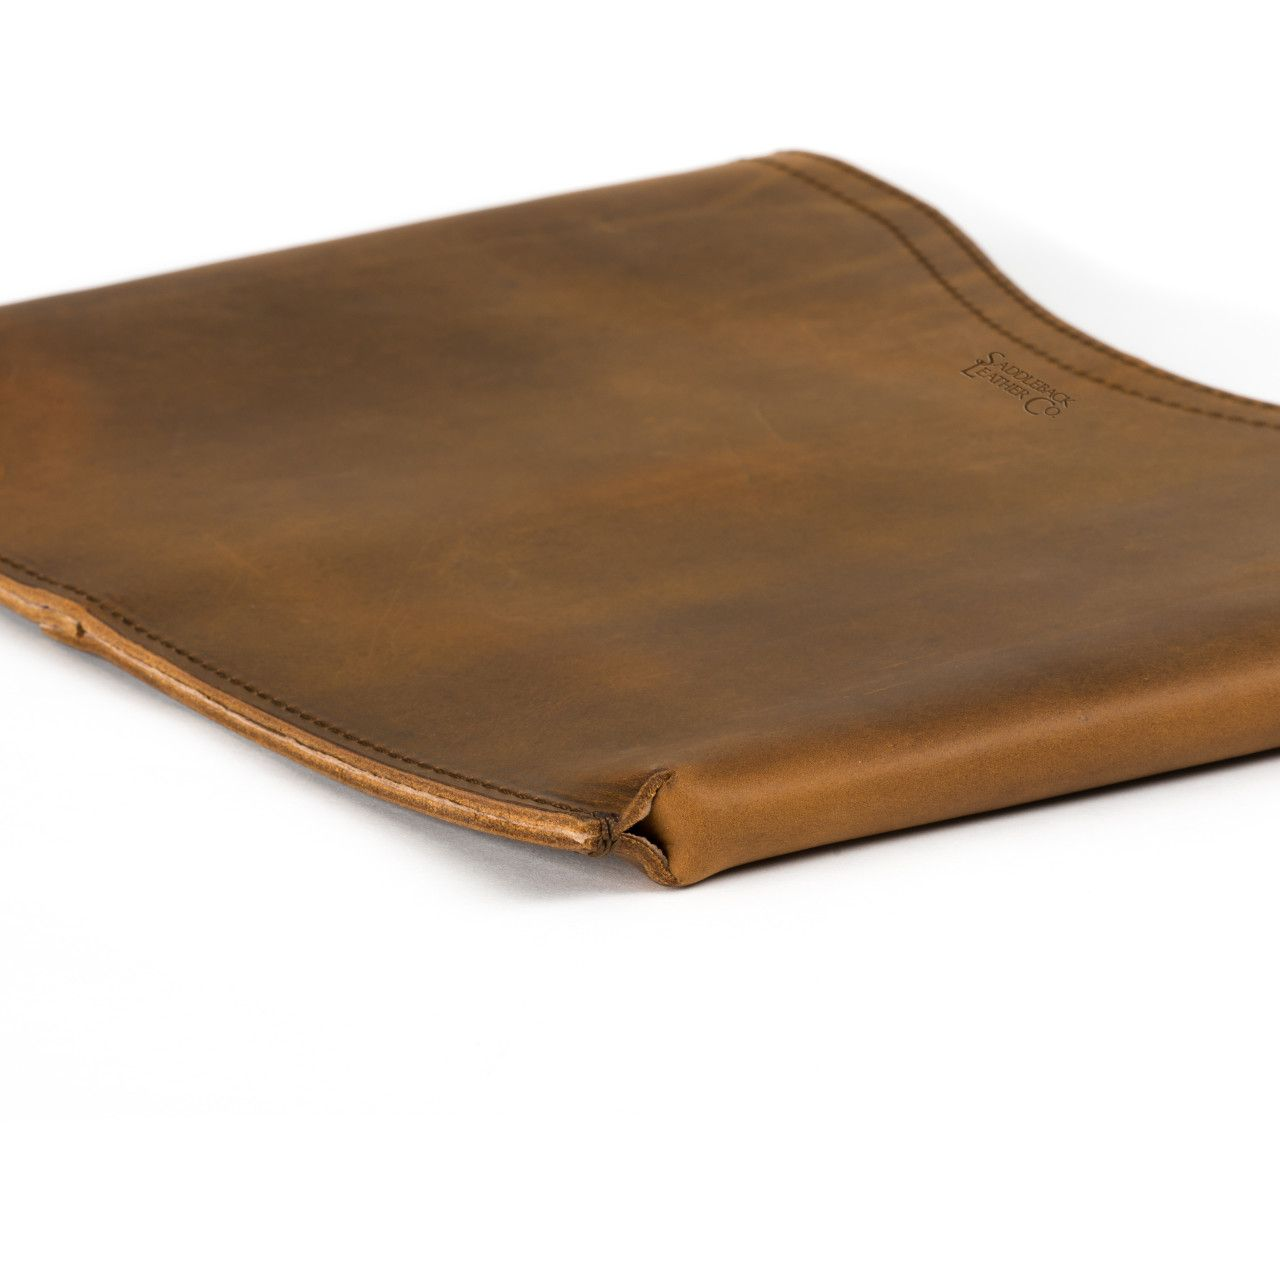 macbook pro leather sleeve small in tobacco leather